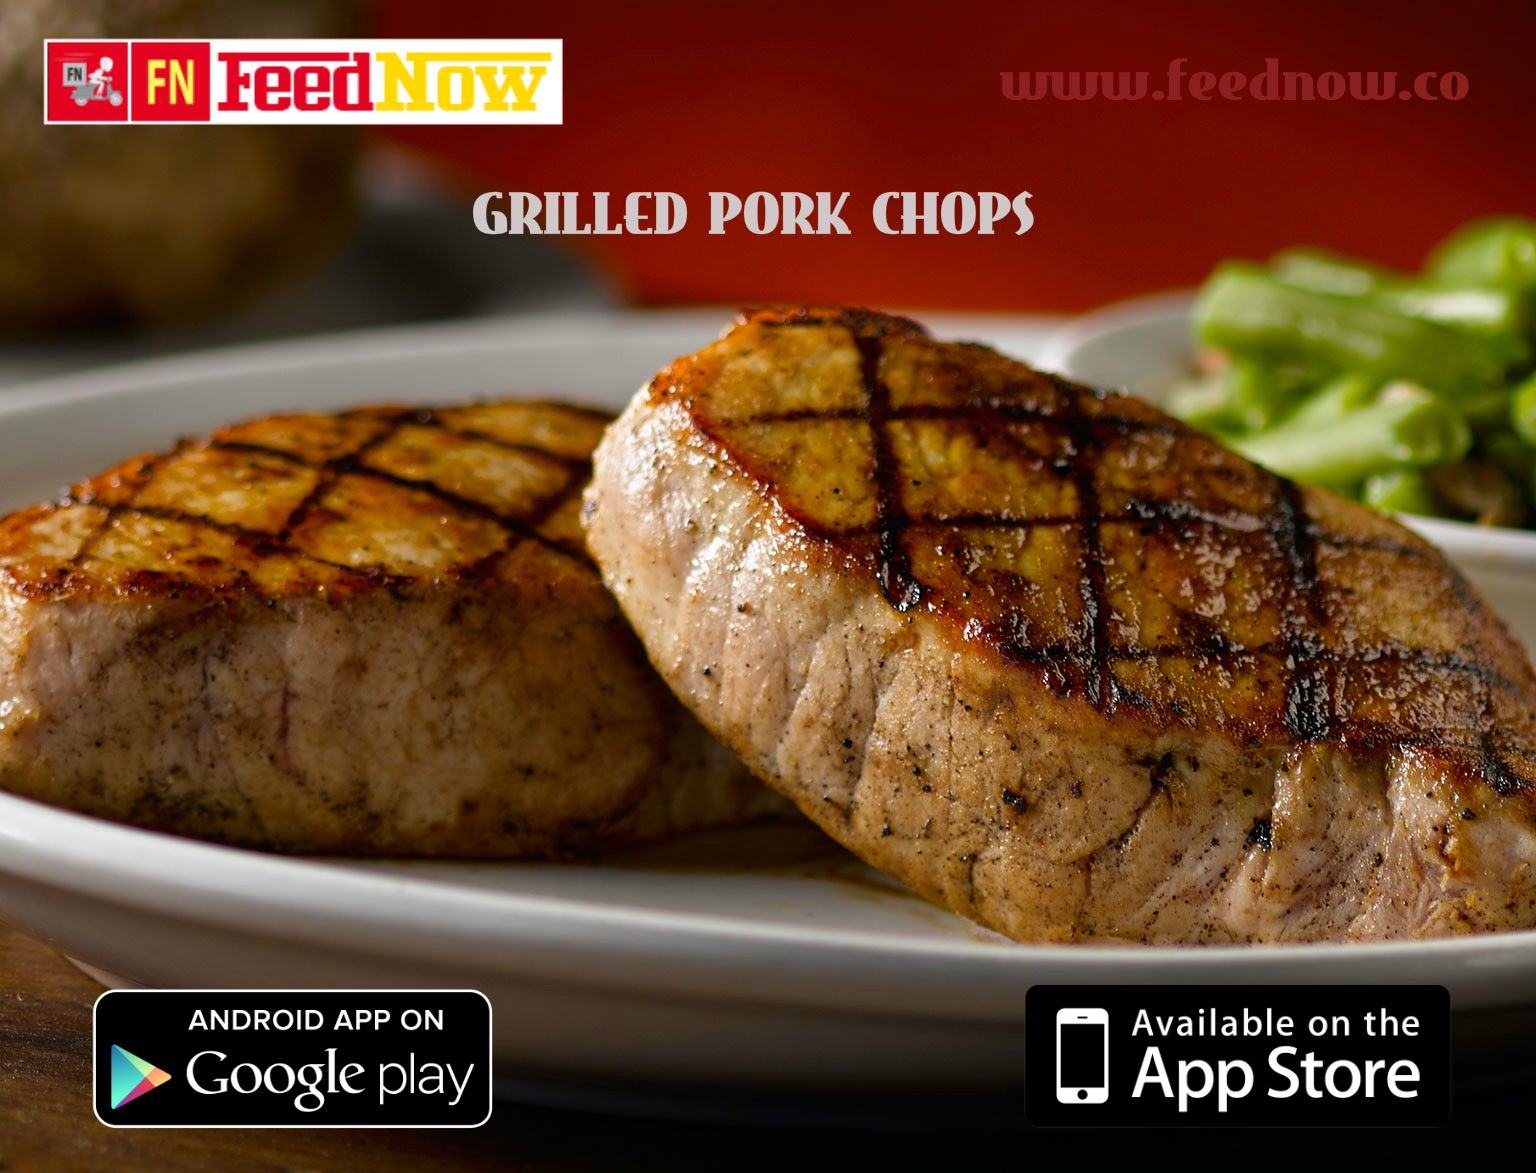 FeedNow has brought to you delicious GrilledPorkChops at